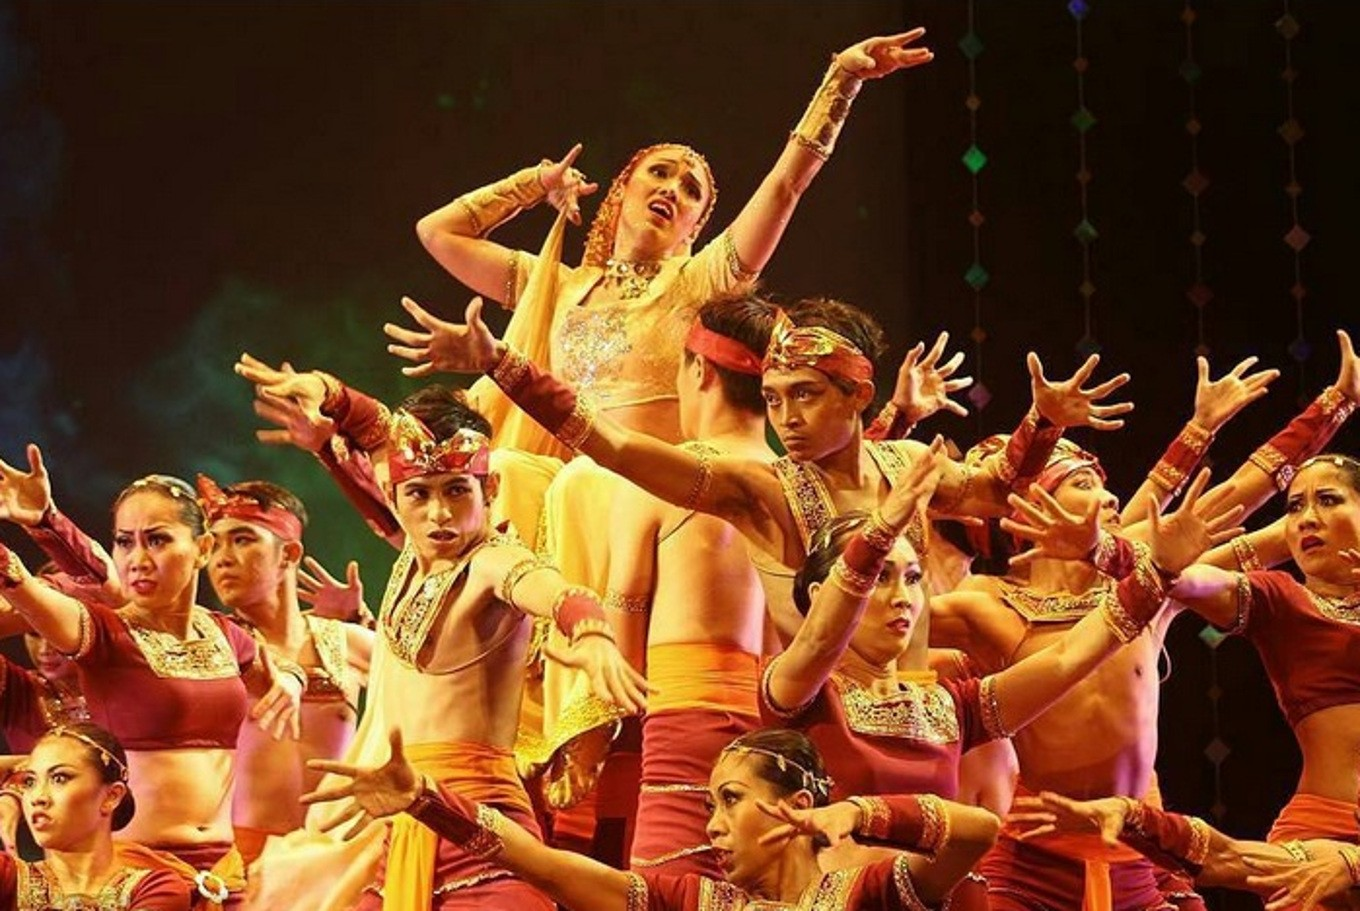 Indonesian troupe to perform Majapahit-inspired dance in India